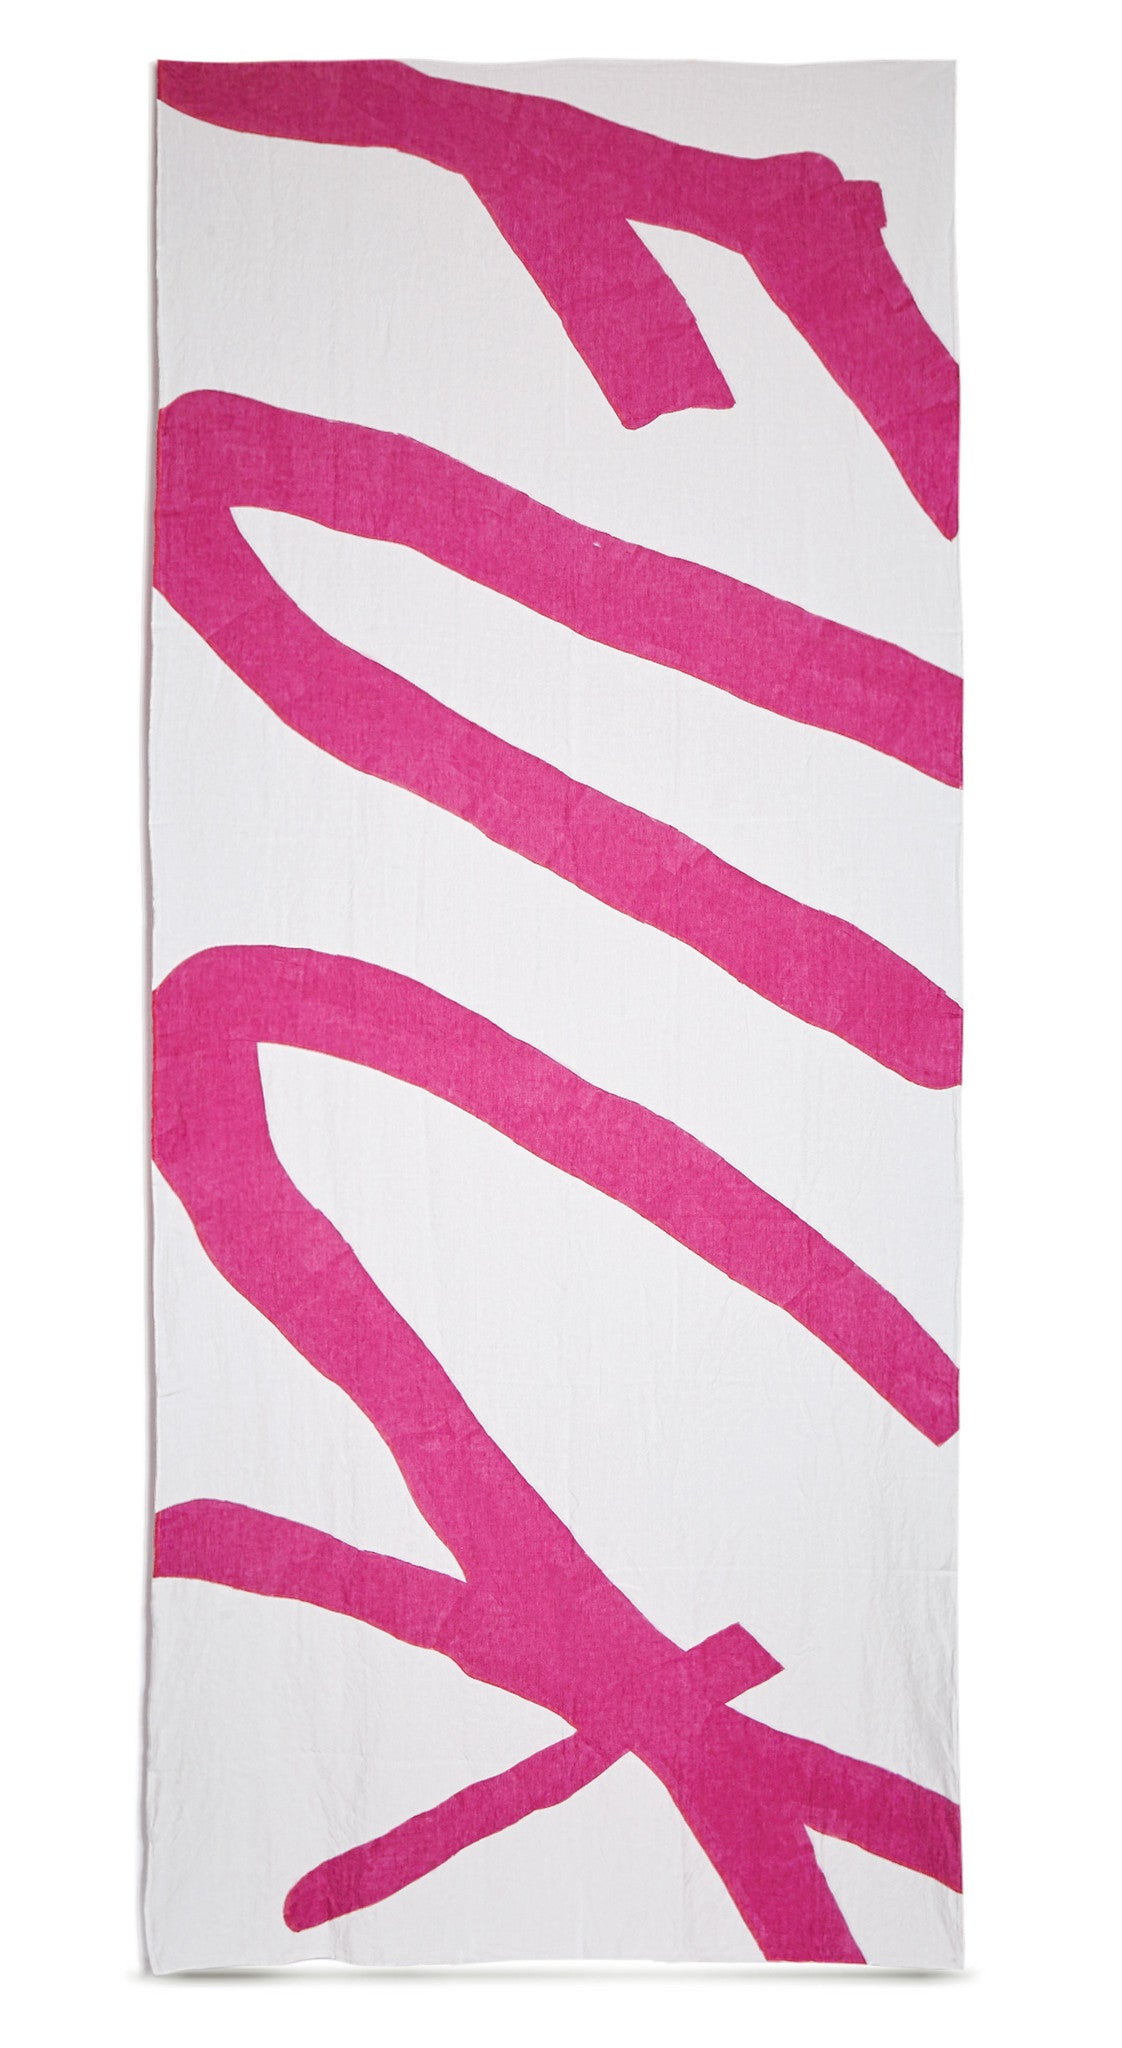 Fuck Word Linen Tablecloth in Fuchsia Pink